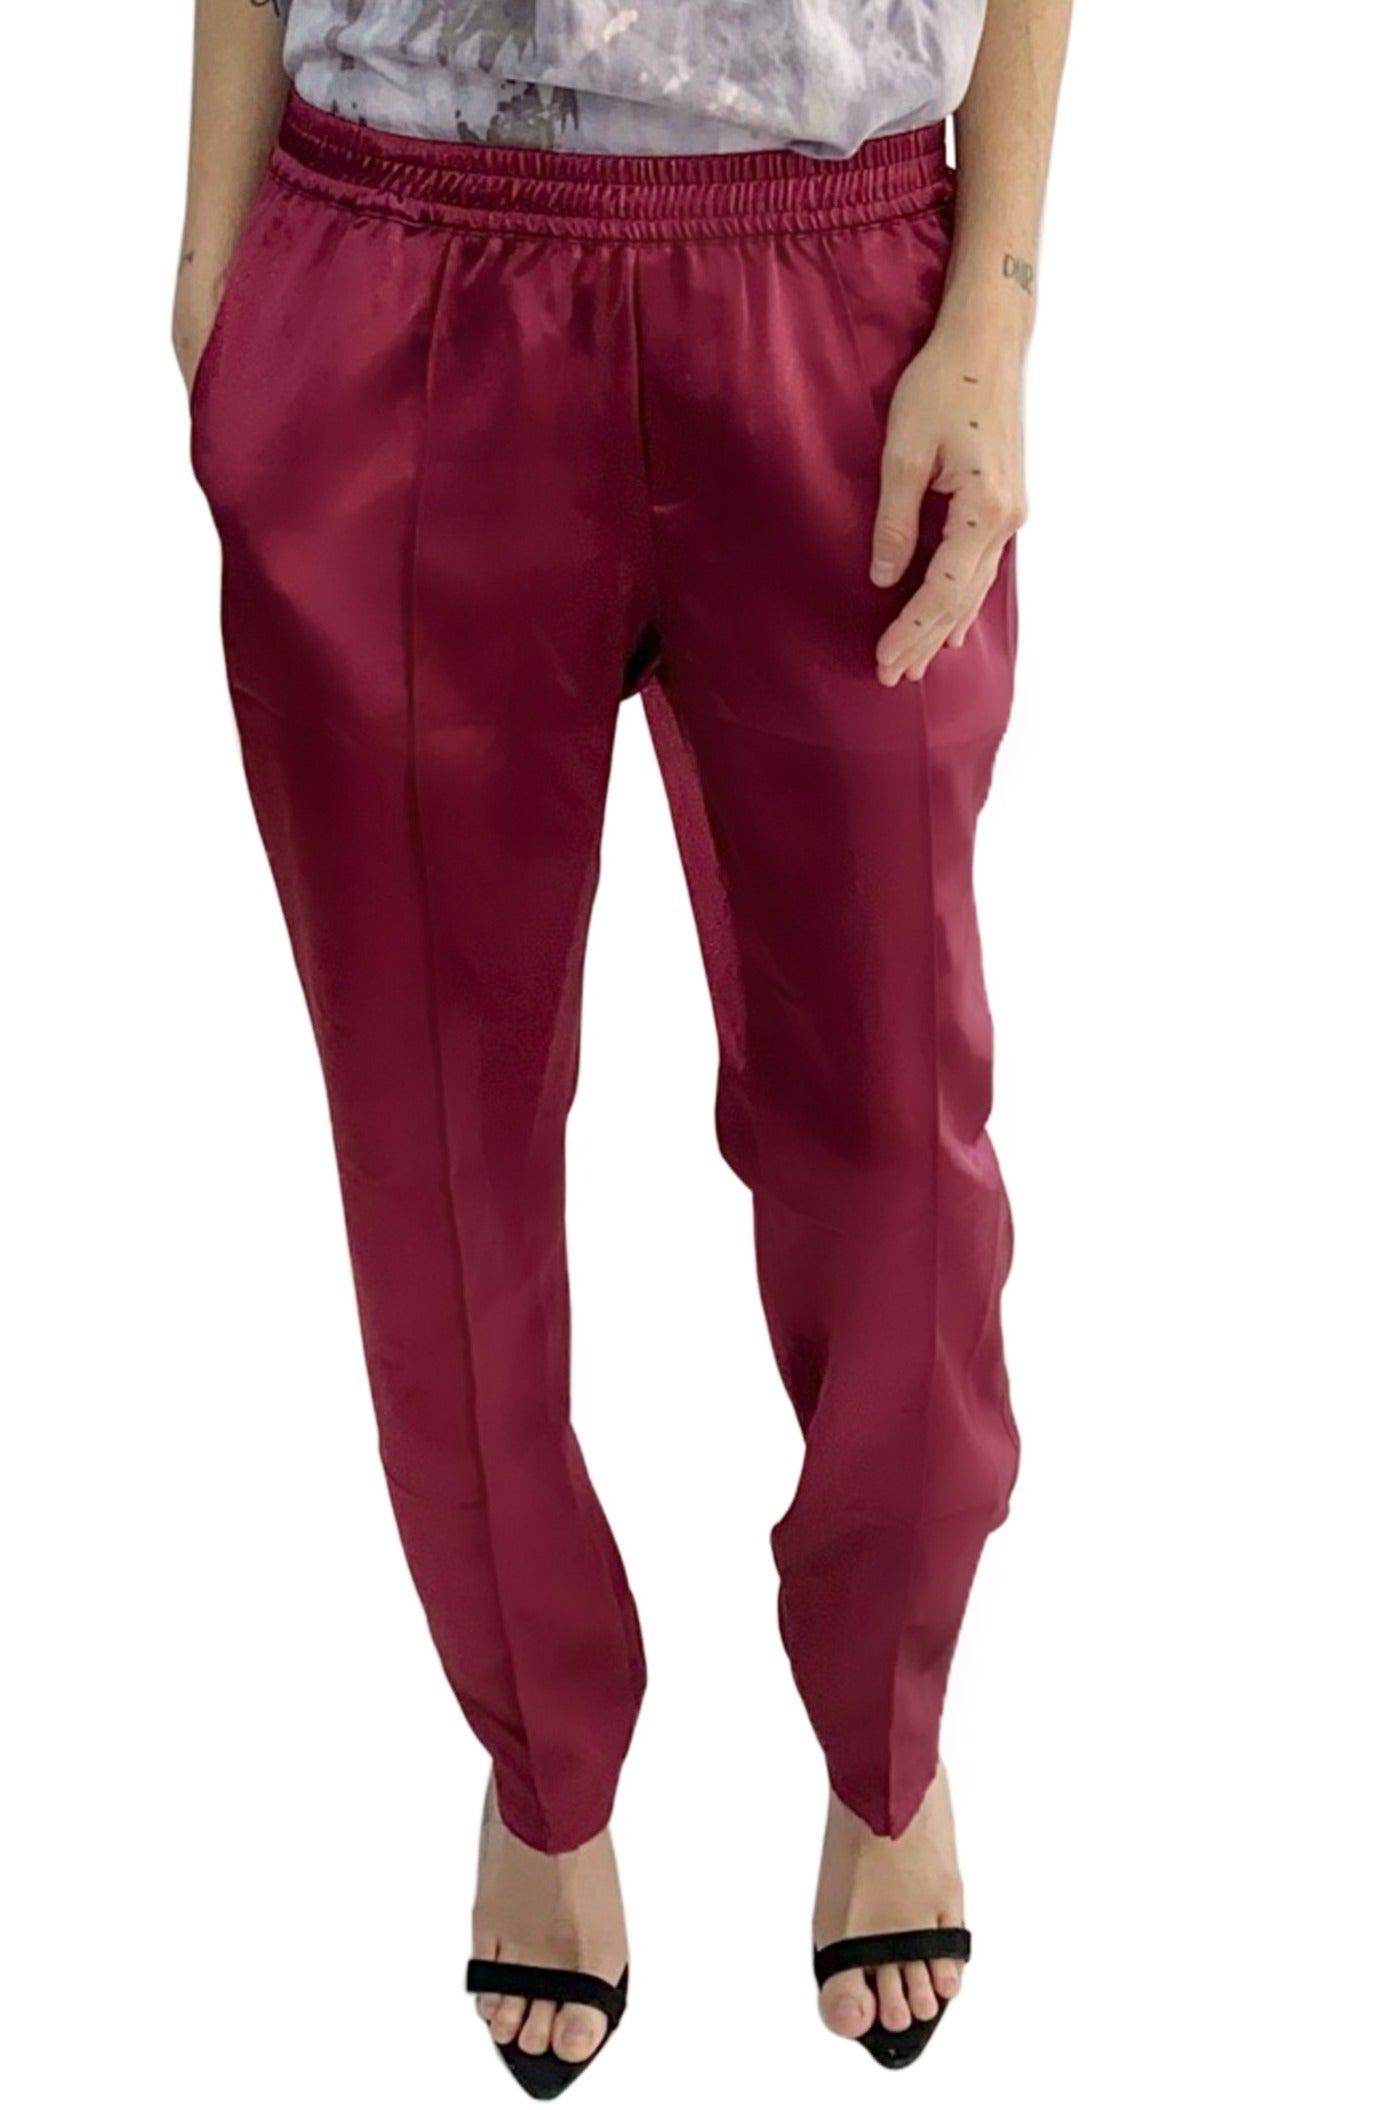 Boxing Pant in Satin